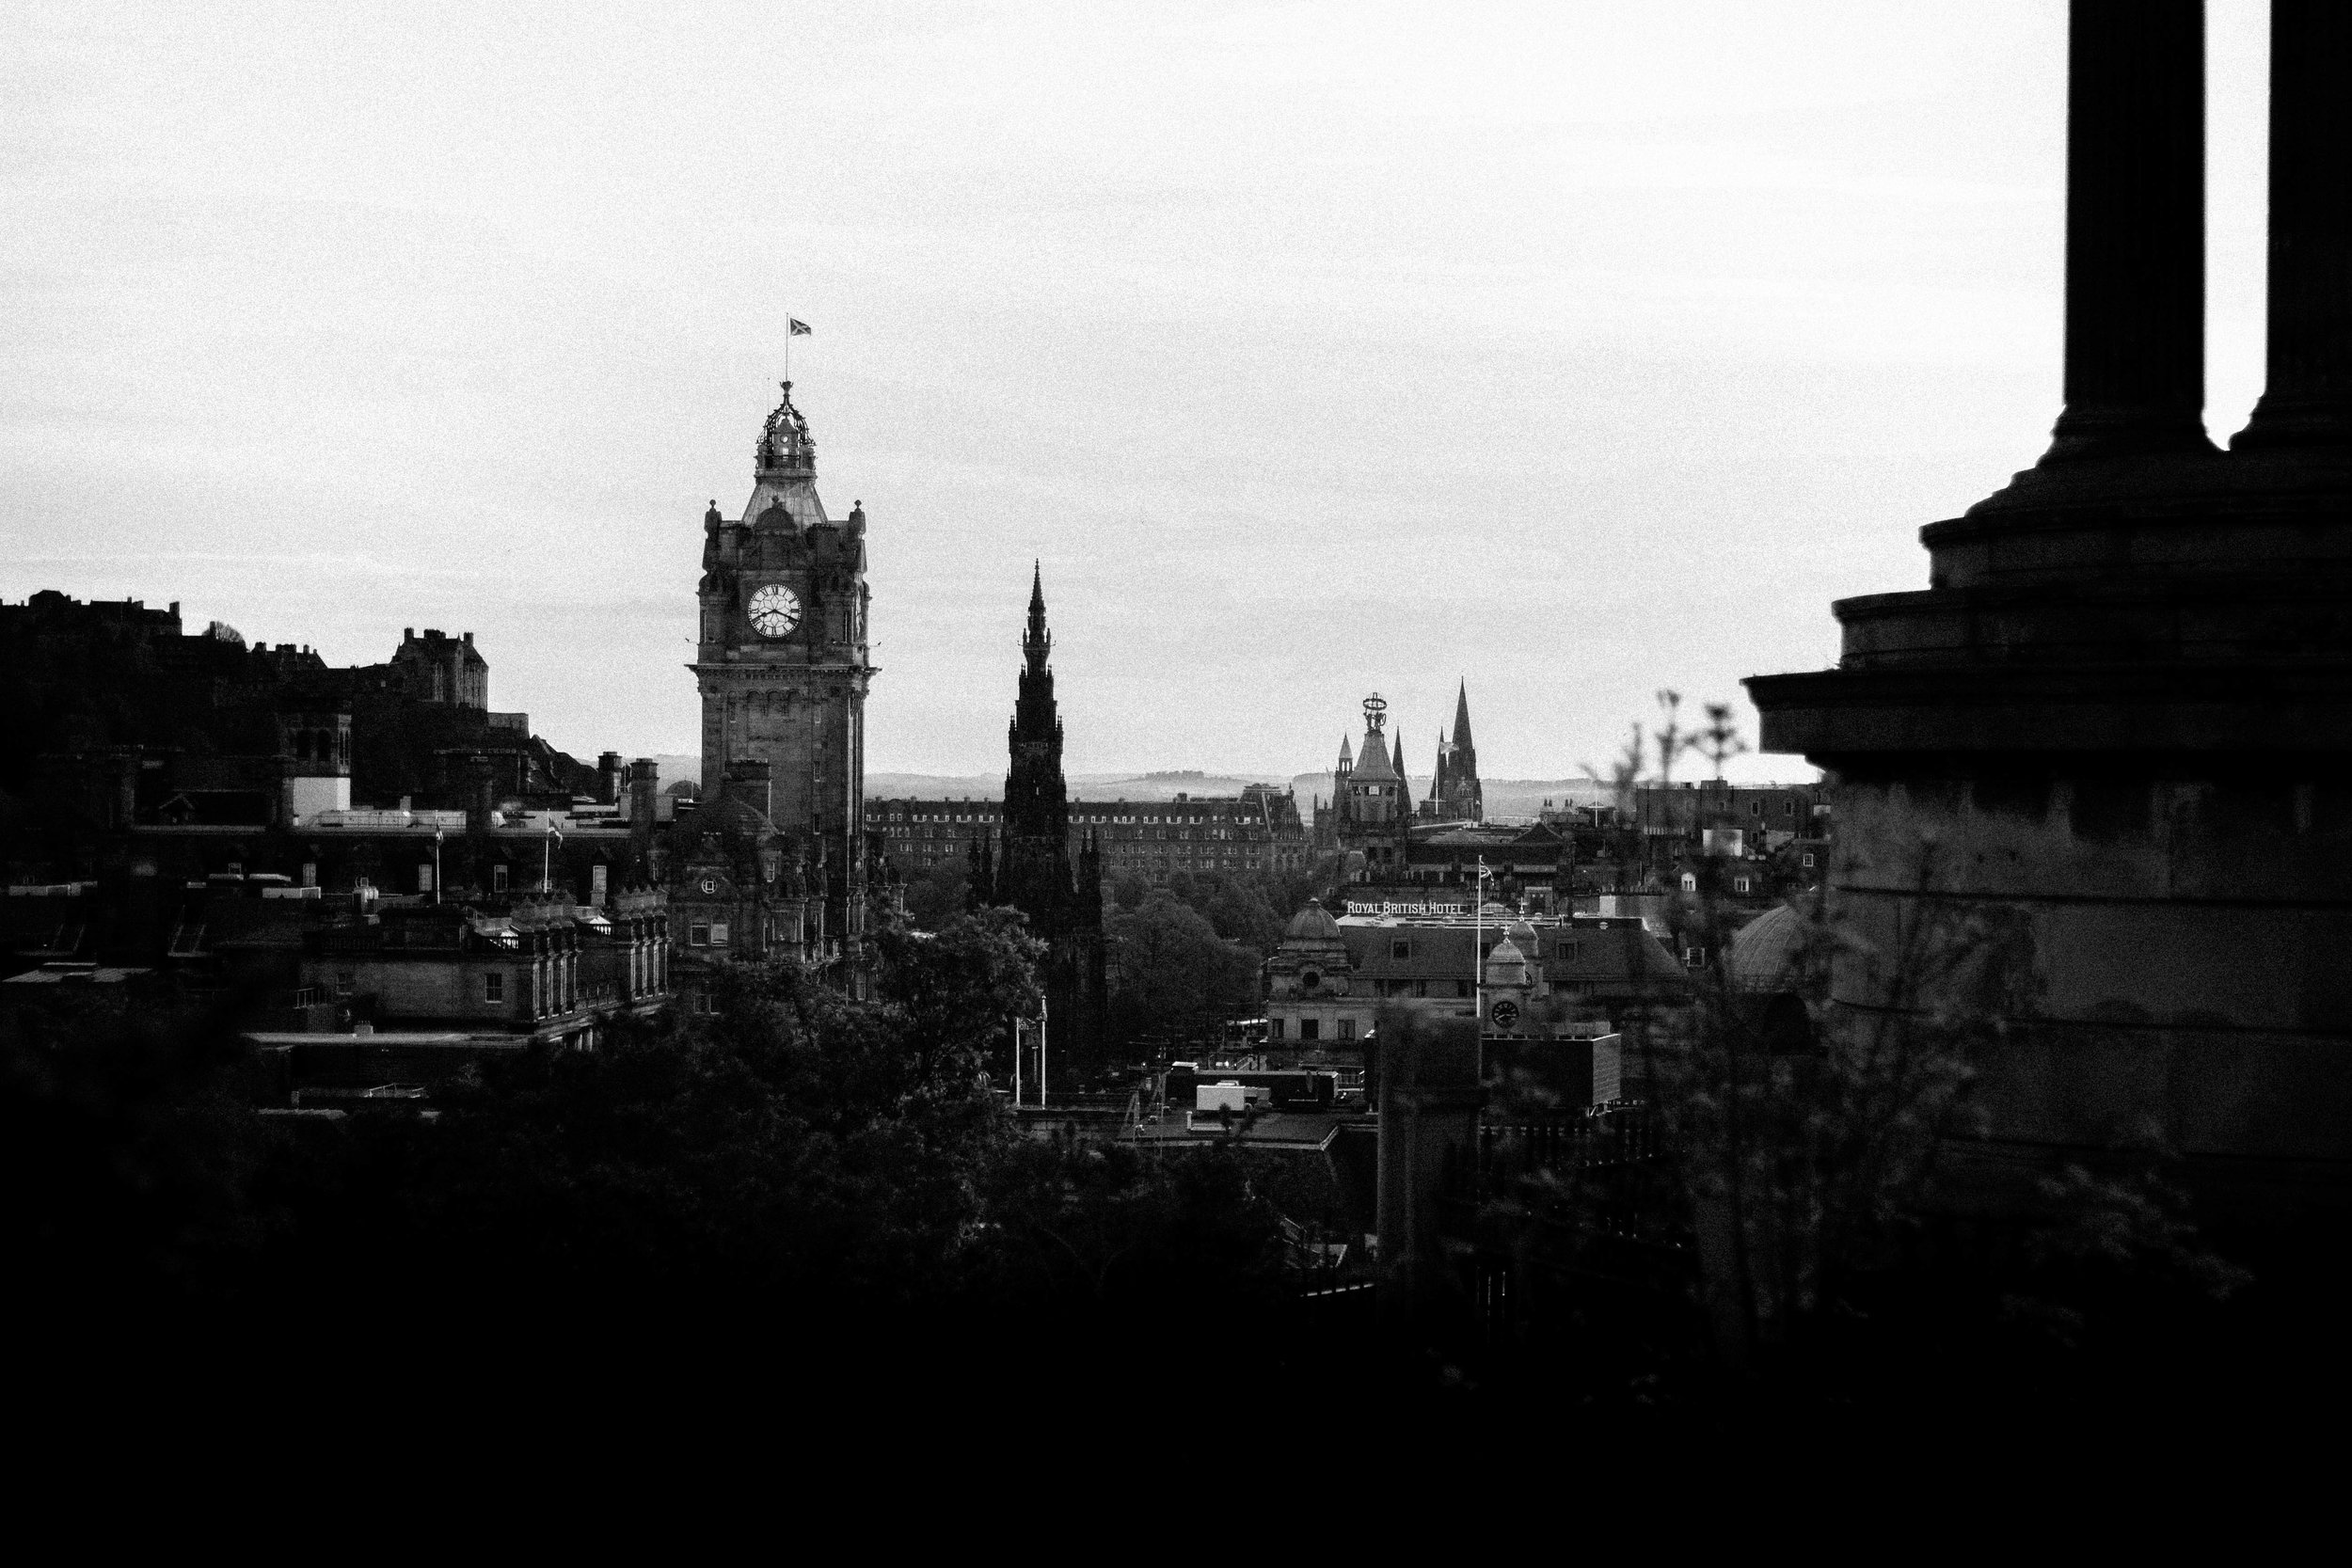 Part of the view from Calton Hill.